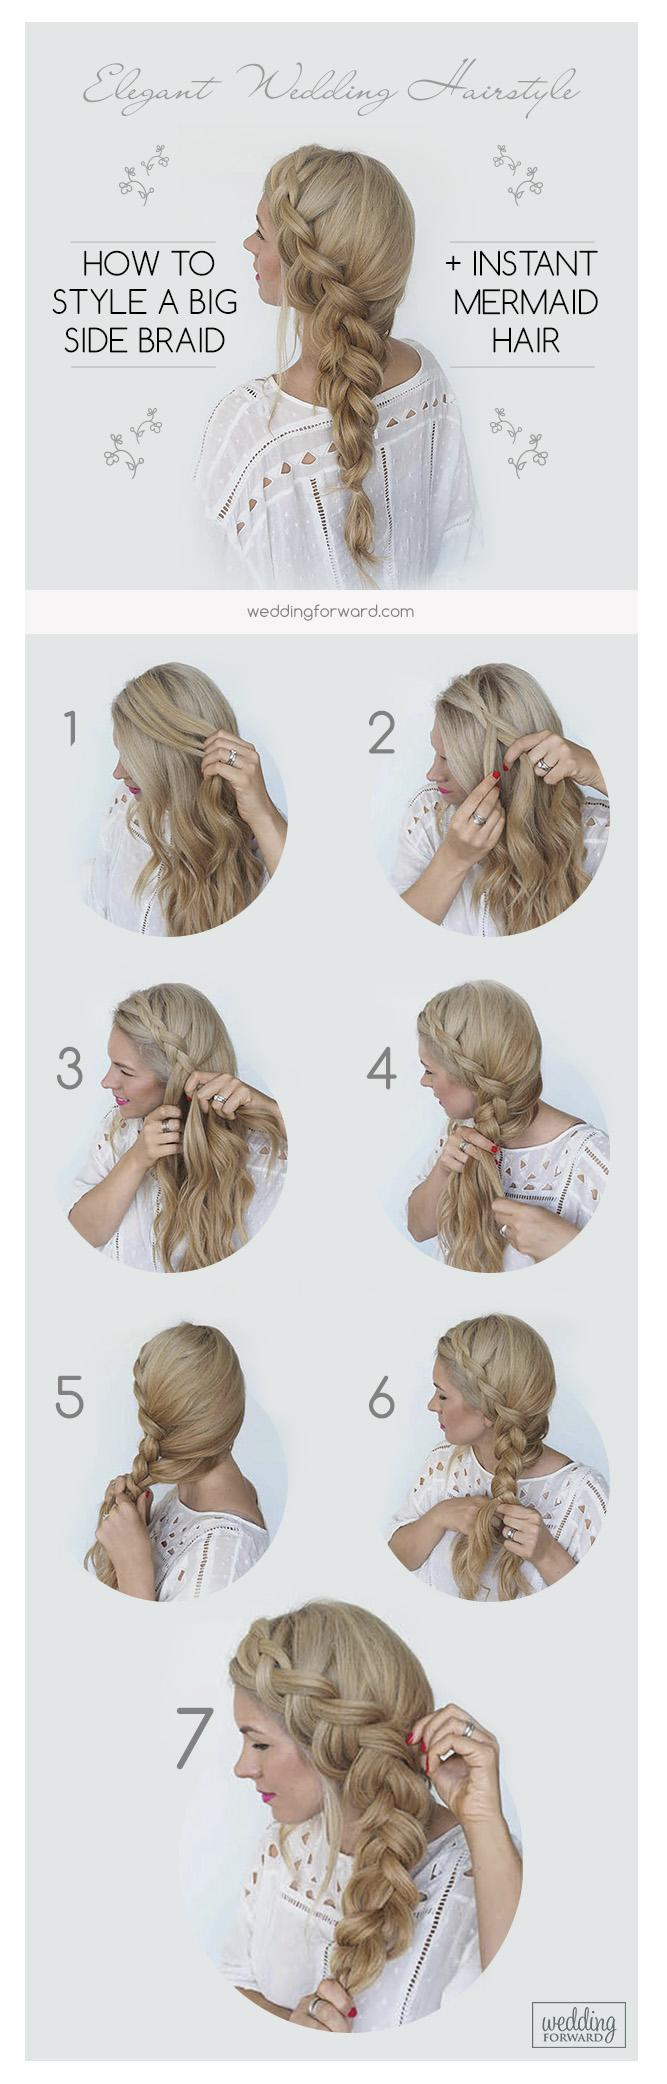 4fb885c5a9 wedding hairstyles for long hair big side braid tutorial